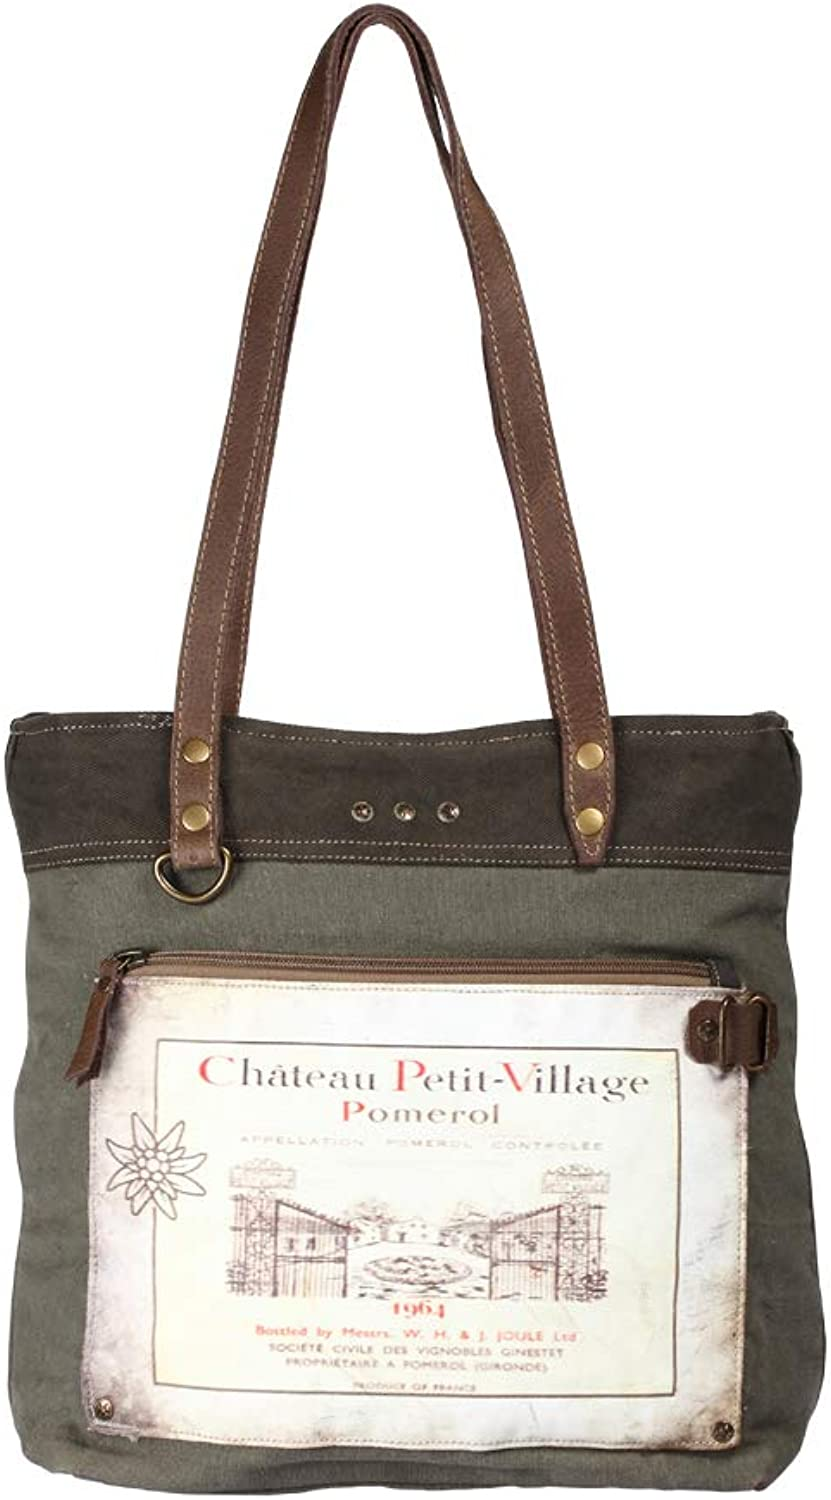 Myra Bag Chateau Petit Village Upcycled Canvas Tote Bag S1206